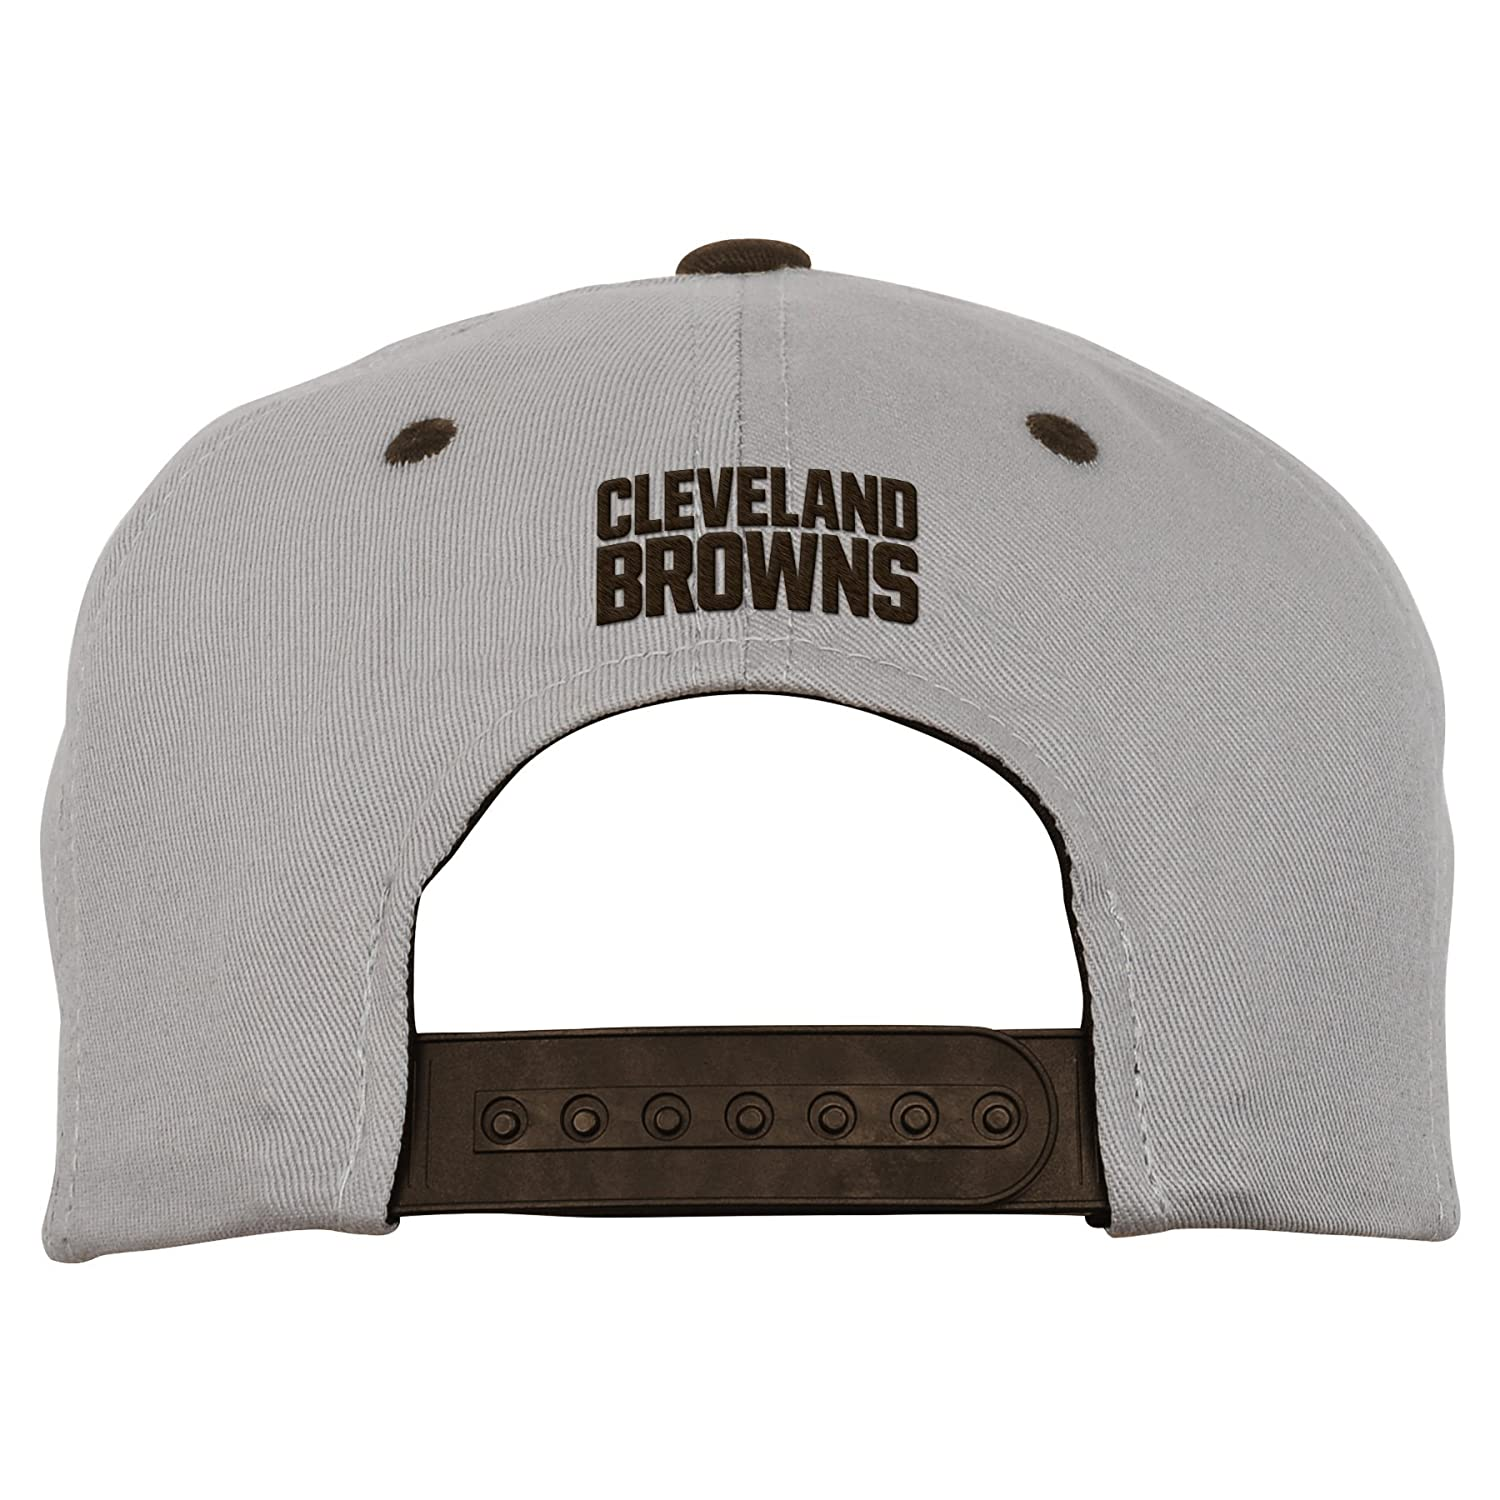 2acec20fd Amazon.com : Outerstuff NFL Youth Boys Team Flatbrim Snapback Hat-Brown  Suede-1 Size, Cleveland Browns : Sports & Outdoors